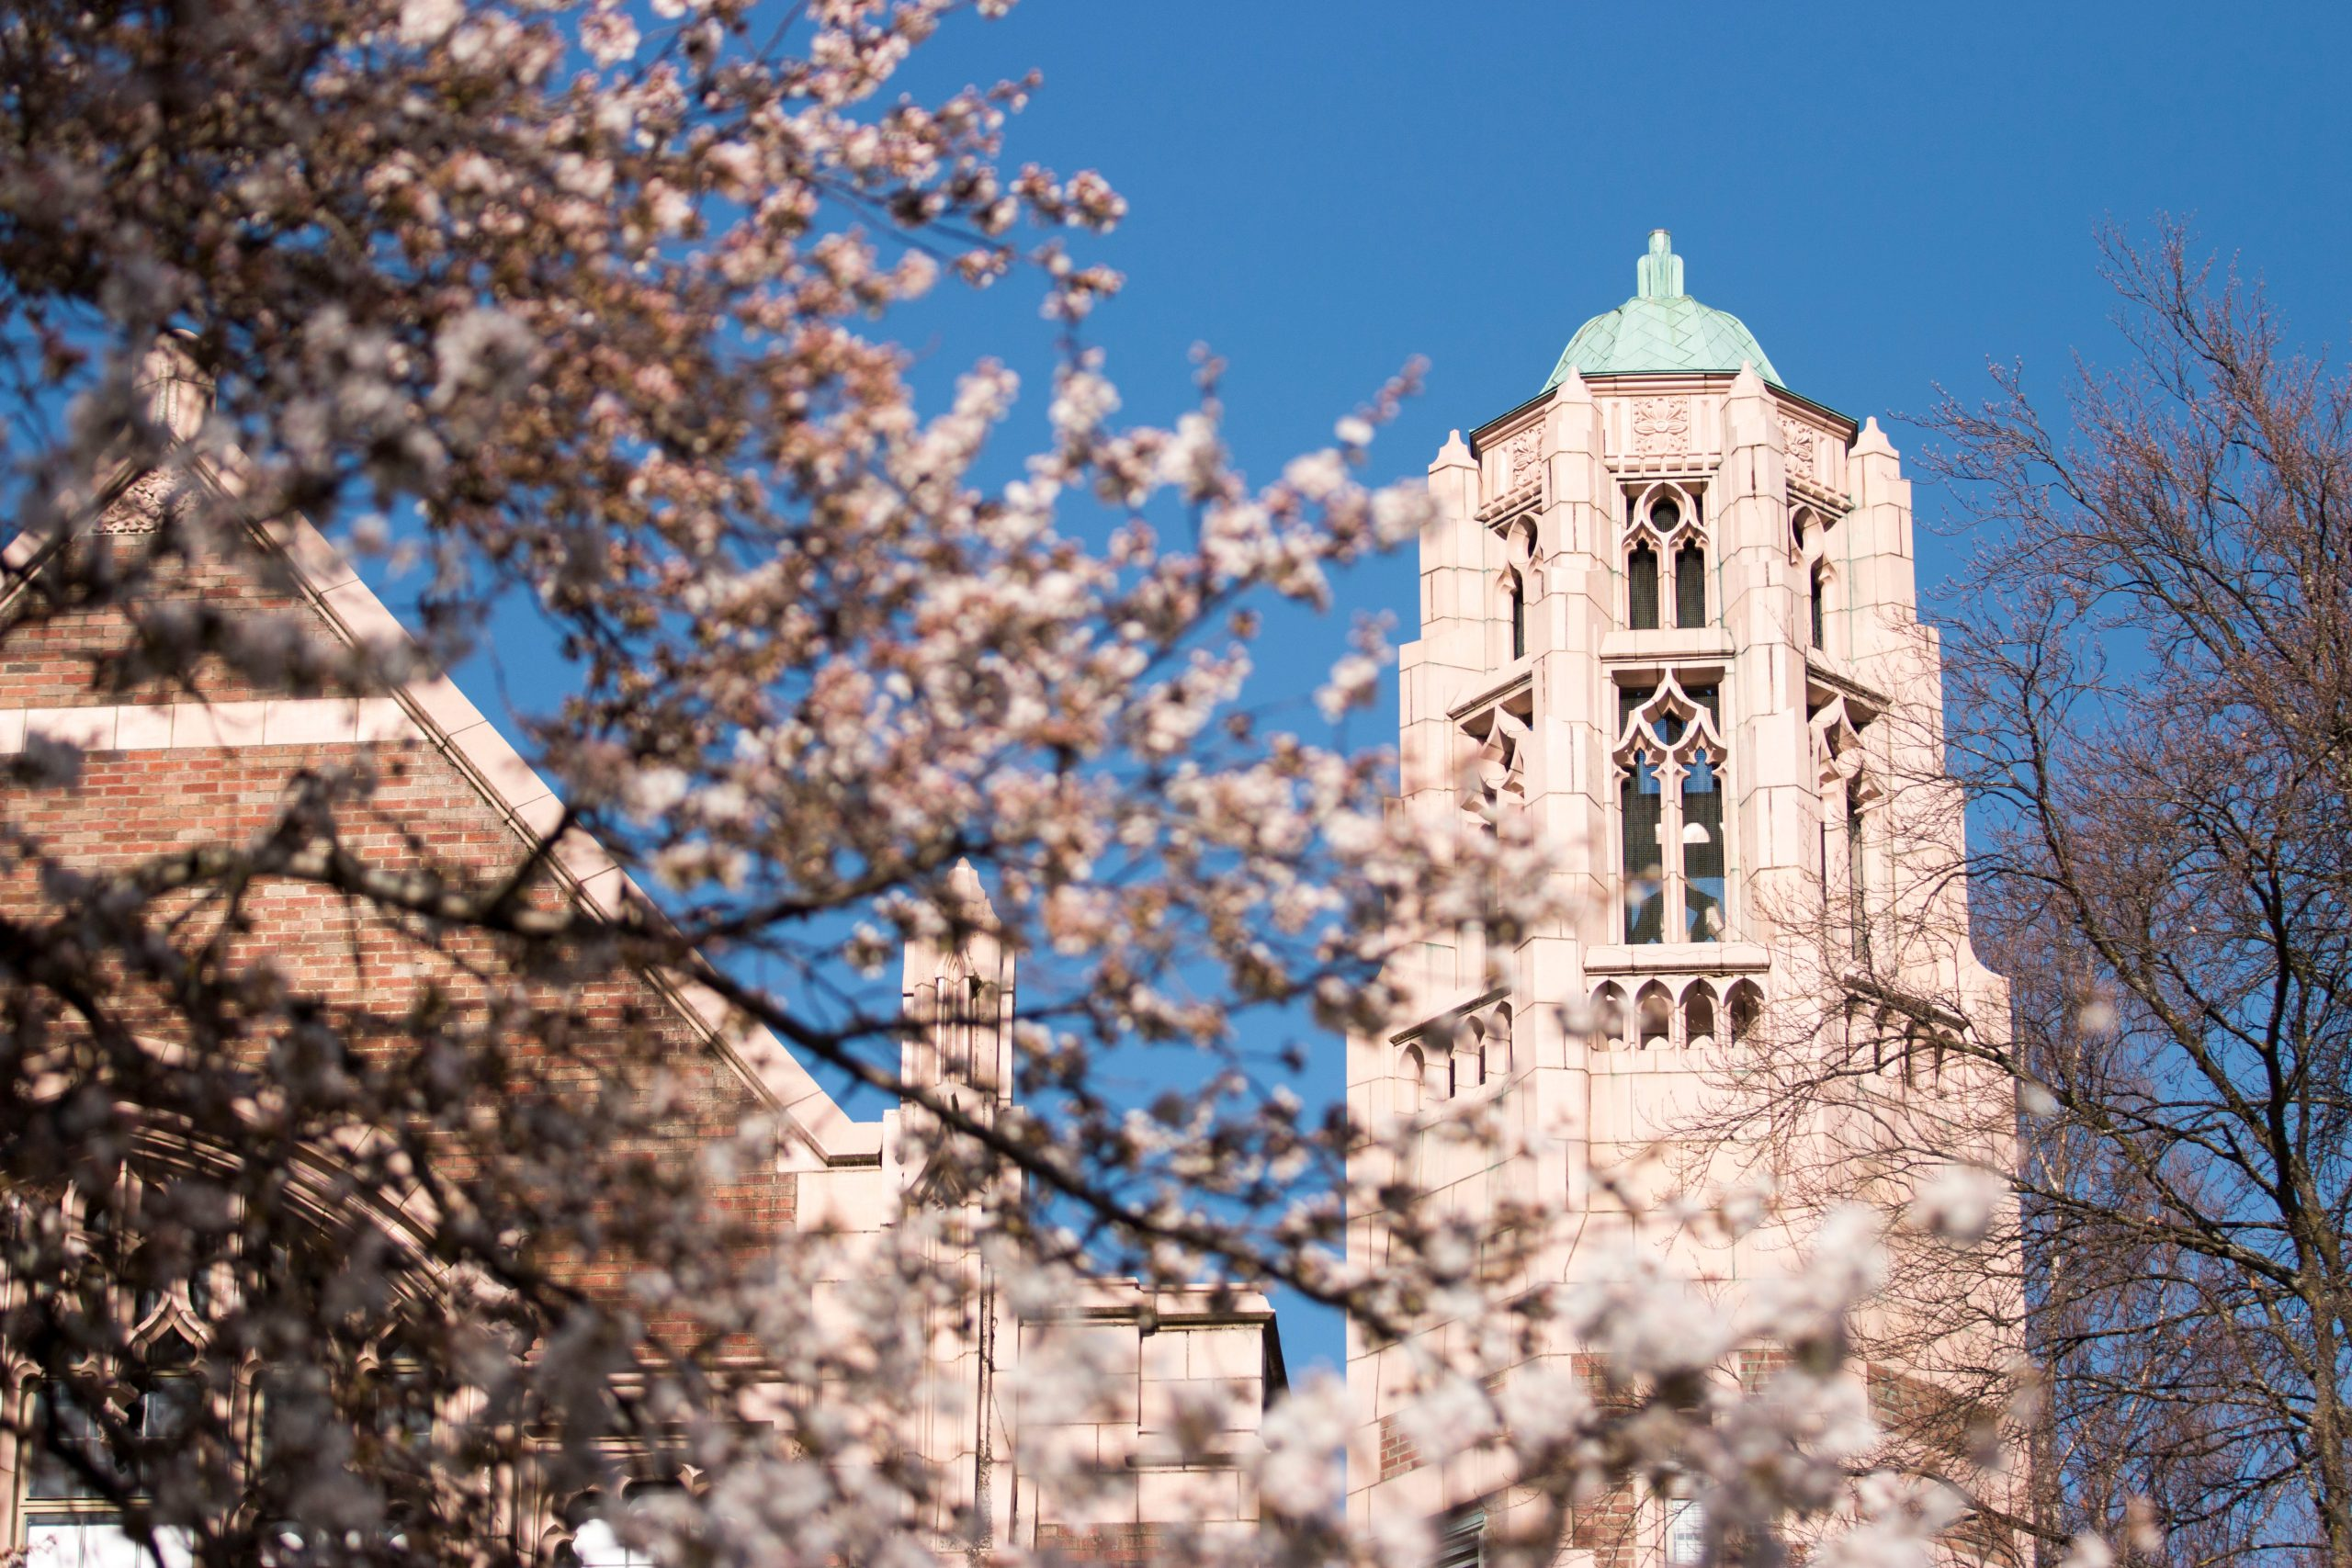 Art Building turret behind cherry blossoms